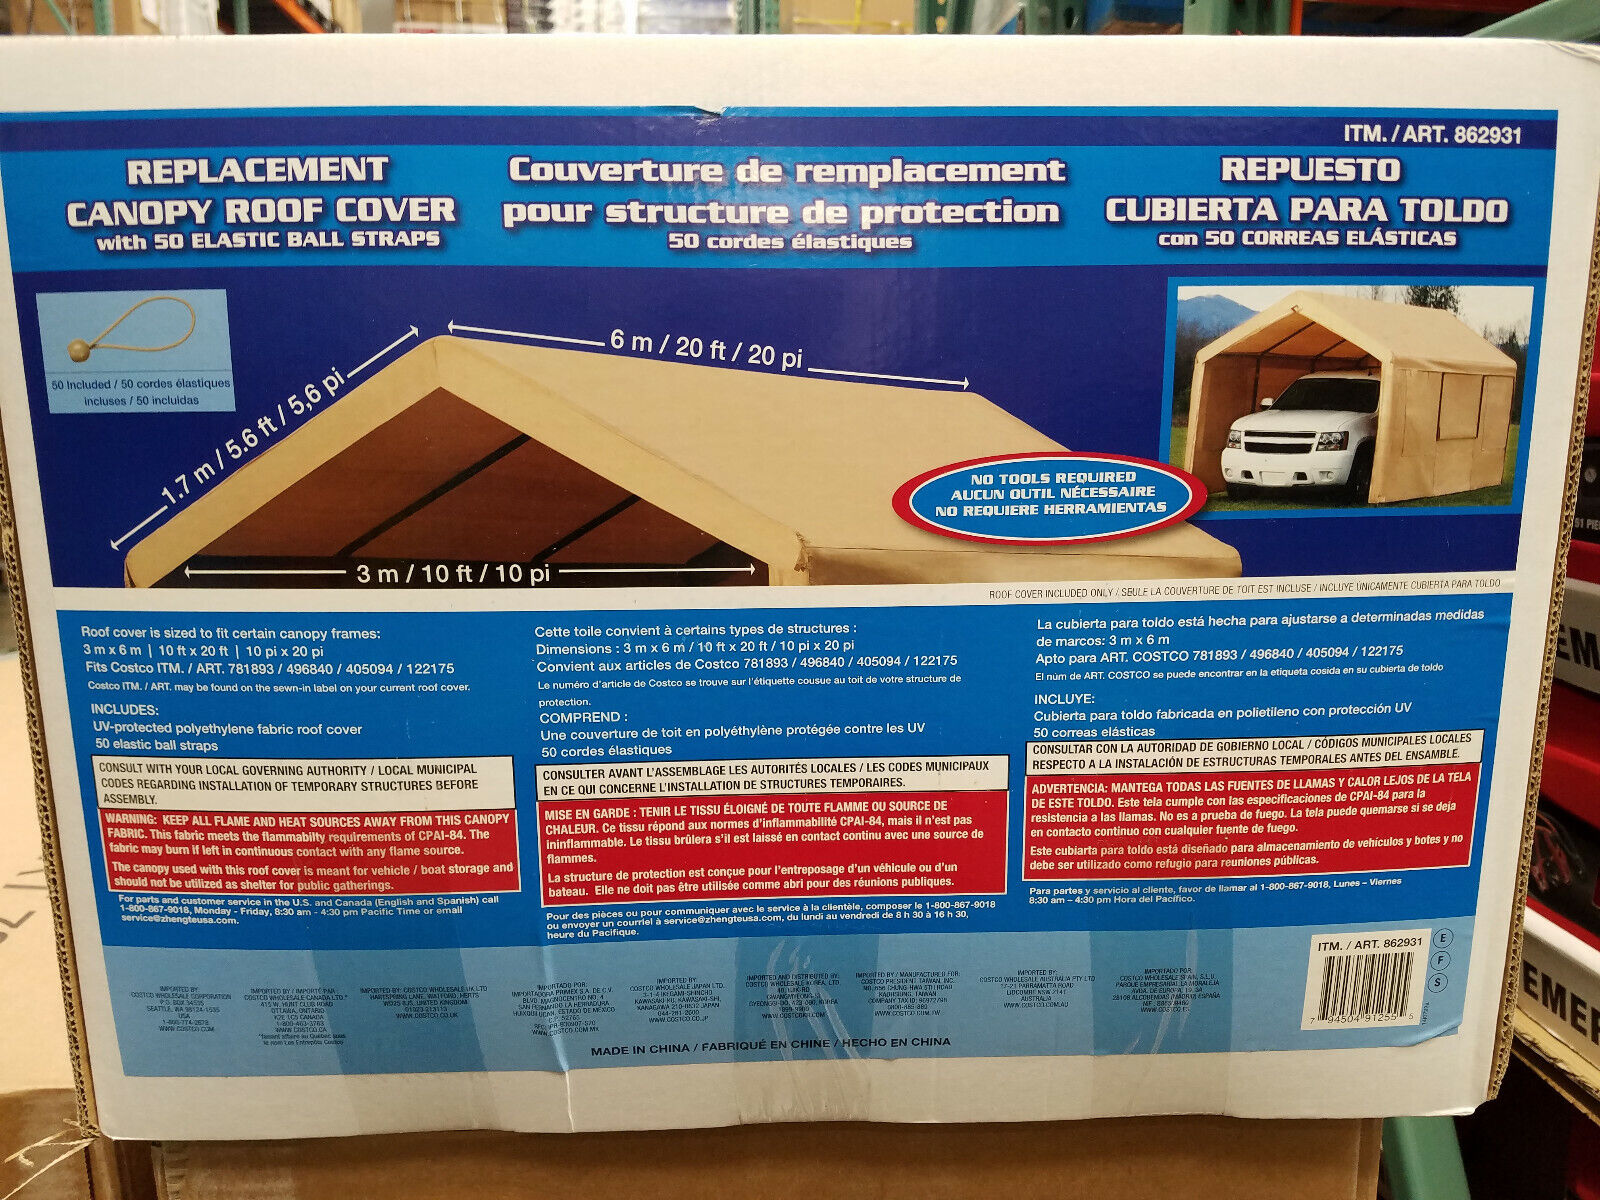 COSTCO 10 x 20 foot HEAVY DUTY CANOPY REPLACEMENT TOP COVER